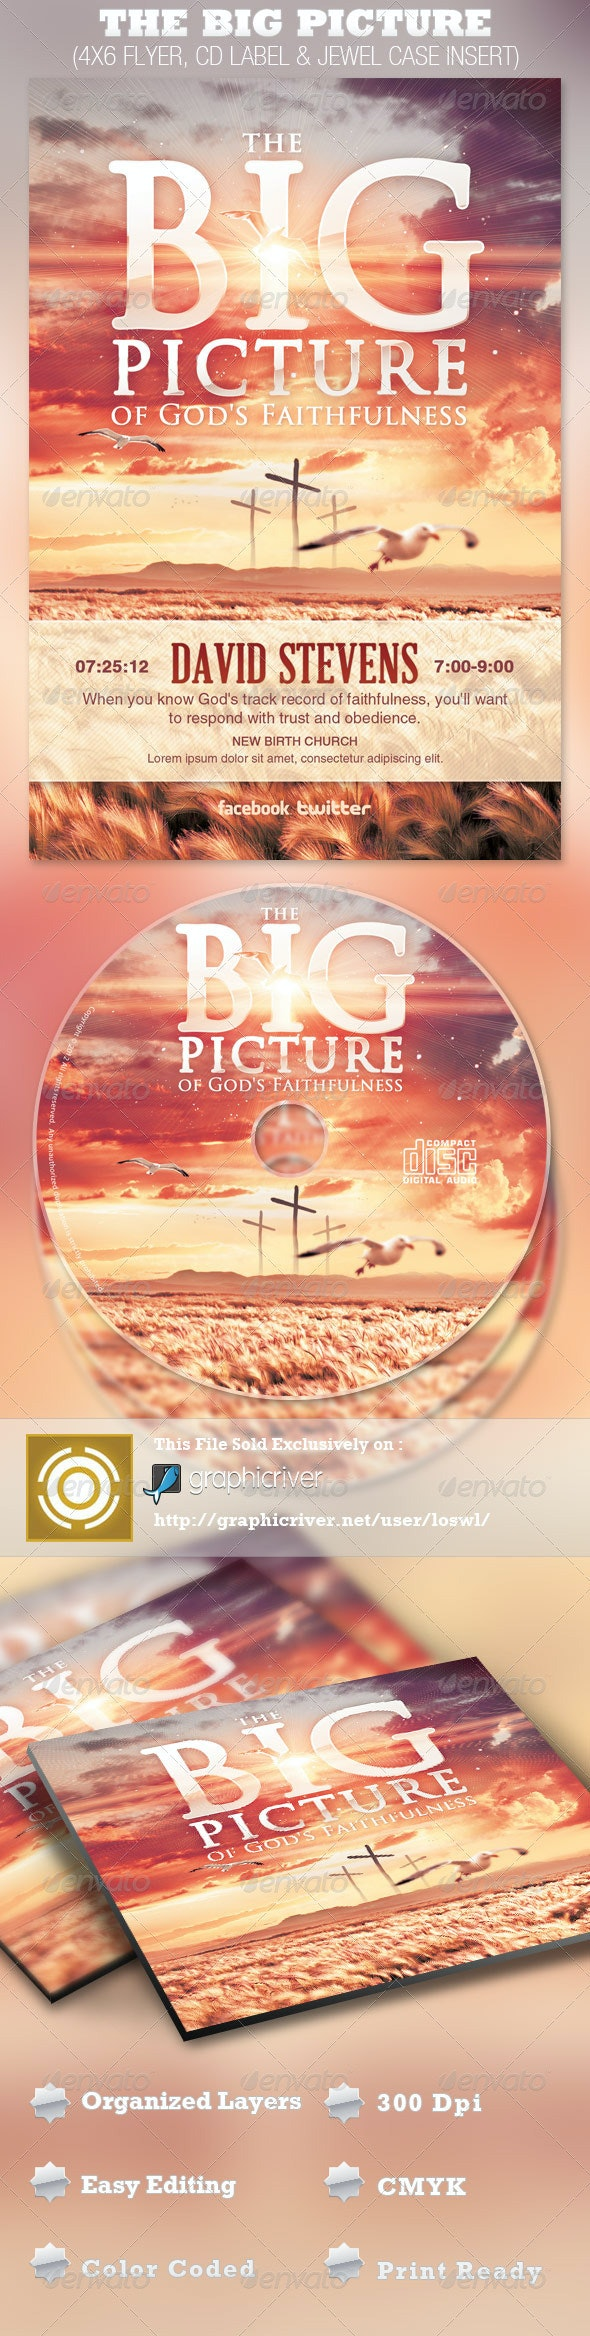 The Big Picture Church Flyer and CD Template - Church Flyers